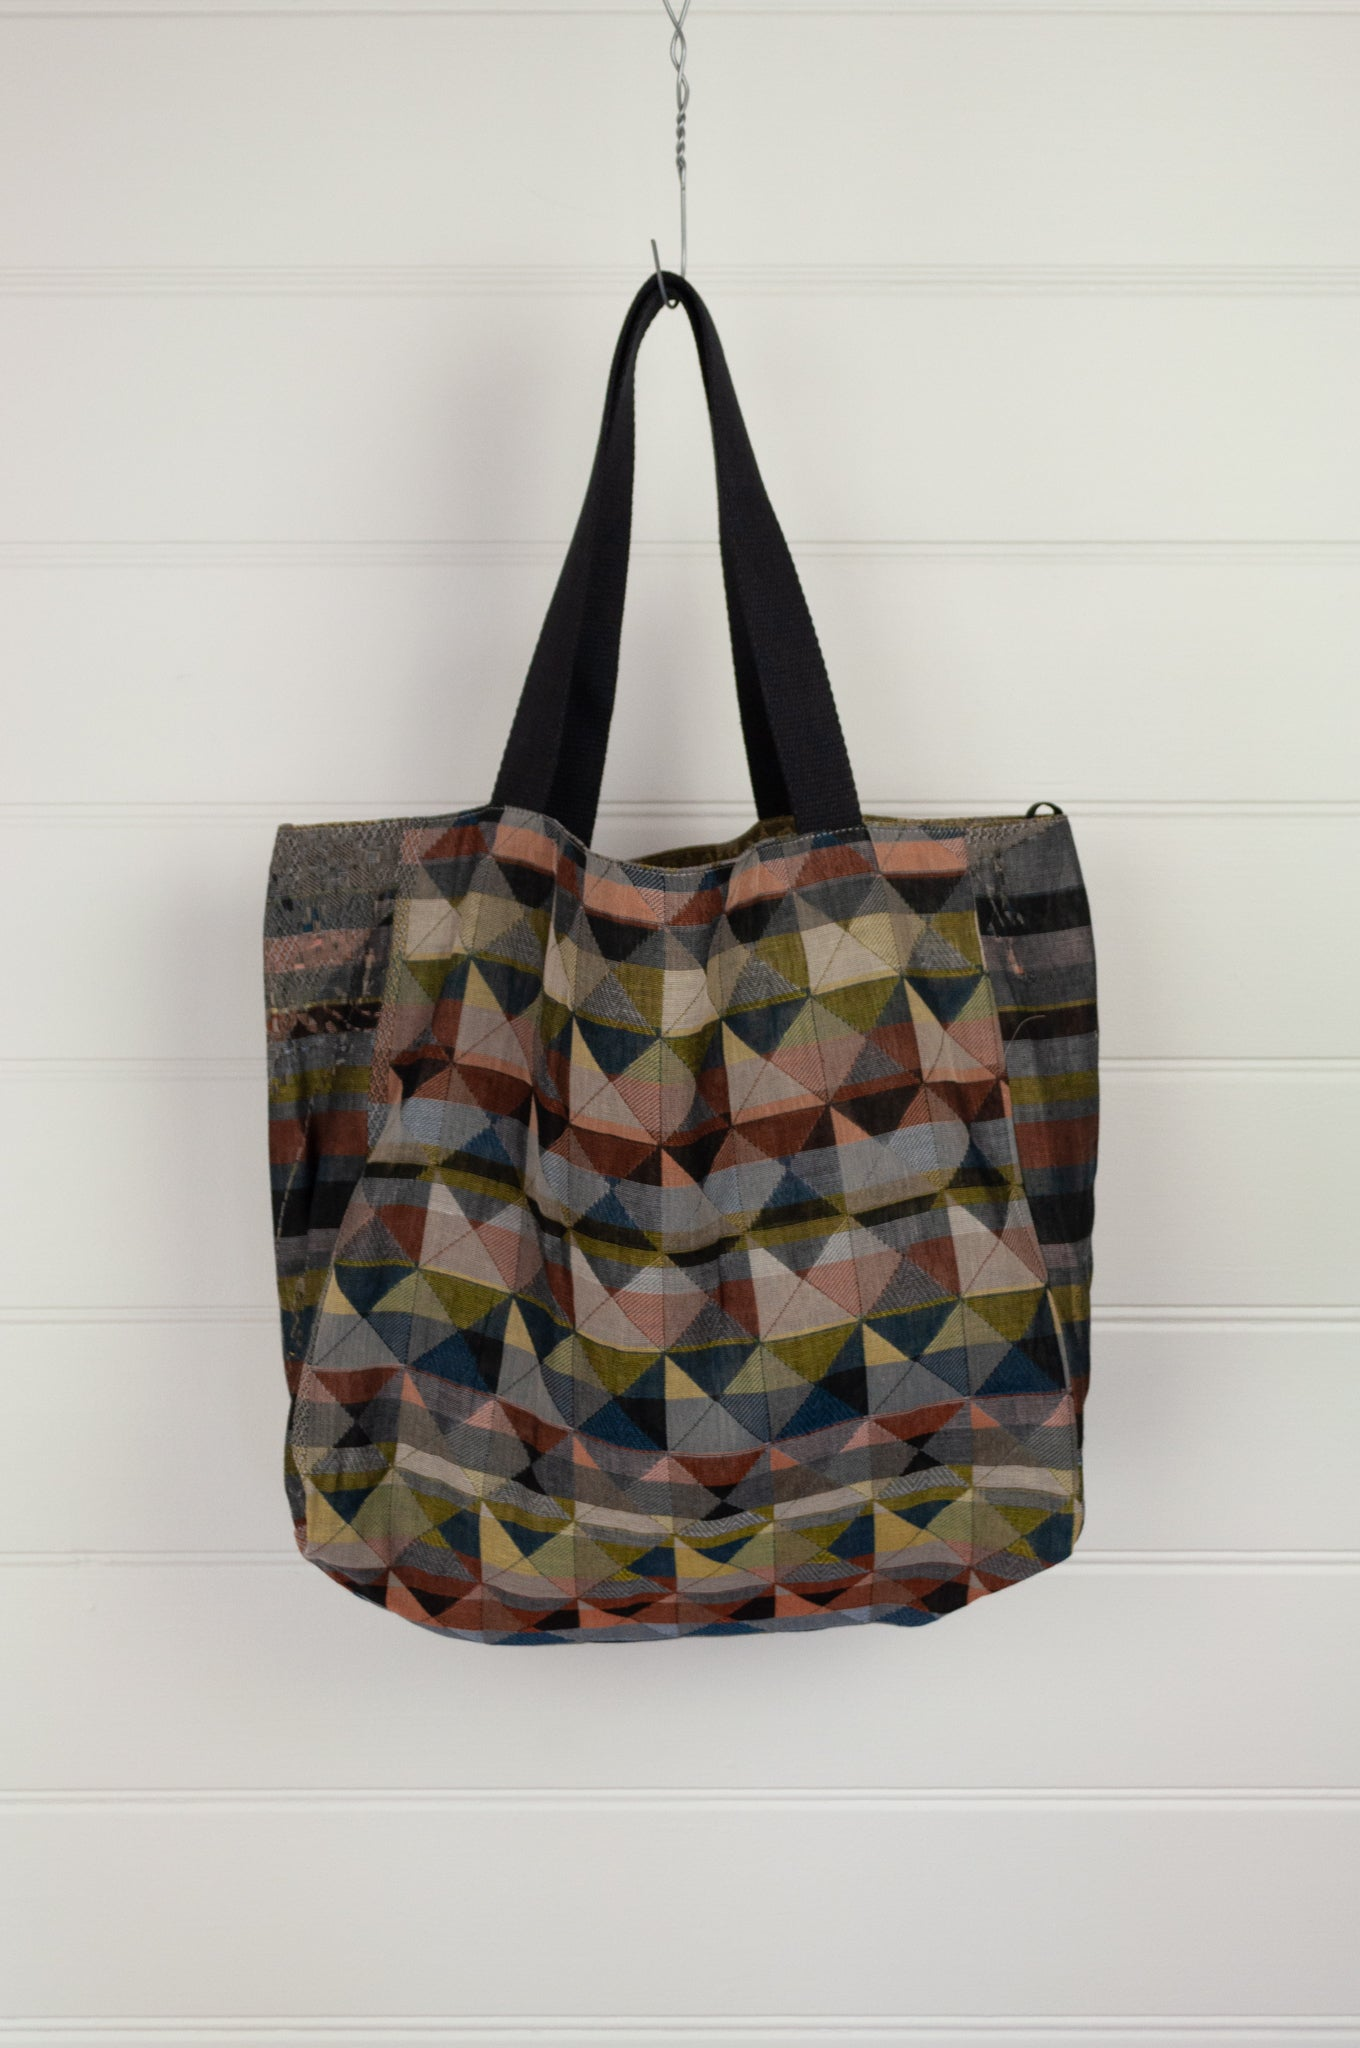 Létol made in France from organic cotton, reversible tote bag medium size with graphic Missoni-inspired Milan design in rich multi-colours, with co-ordinating graphic olive and gold print on the reverse.